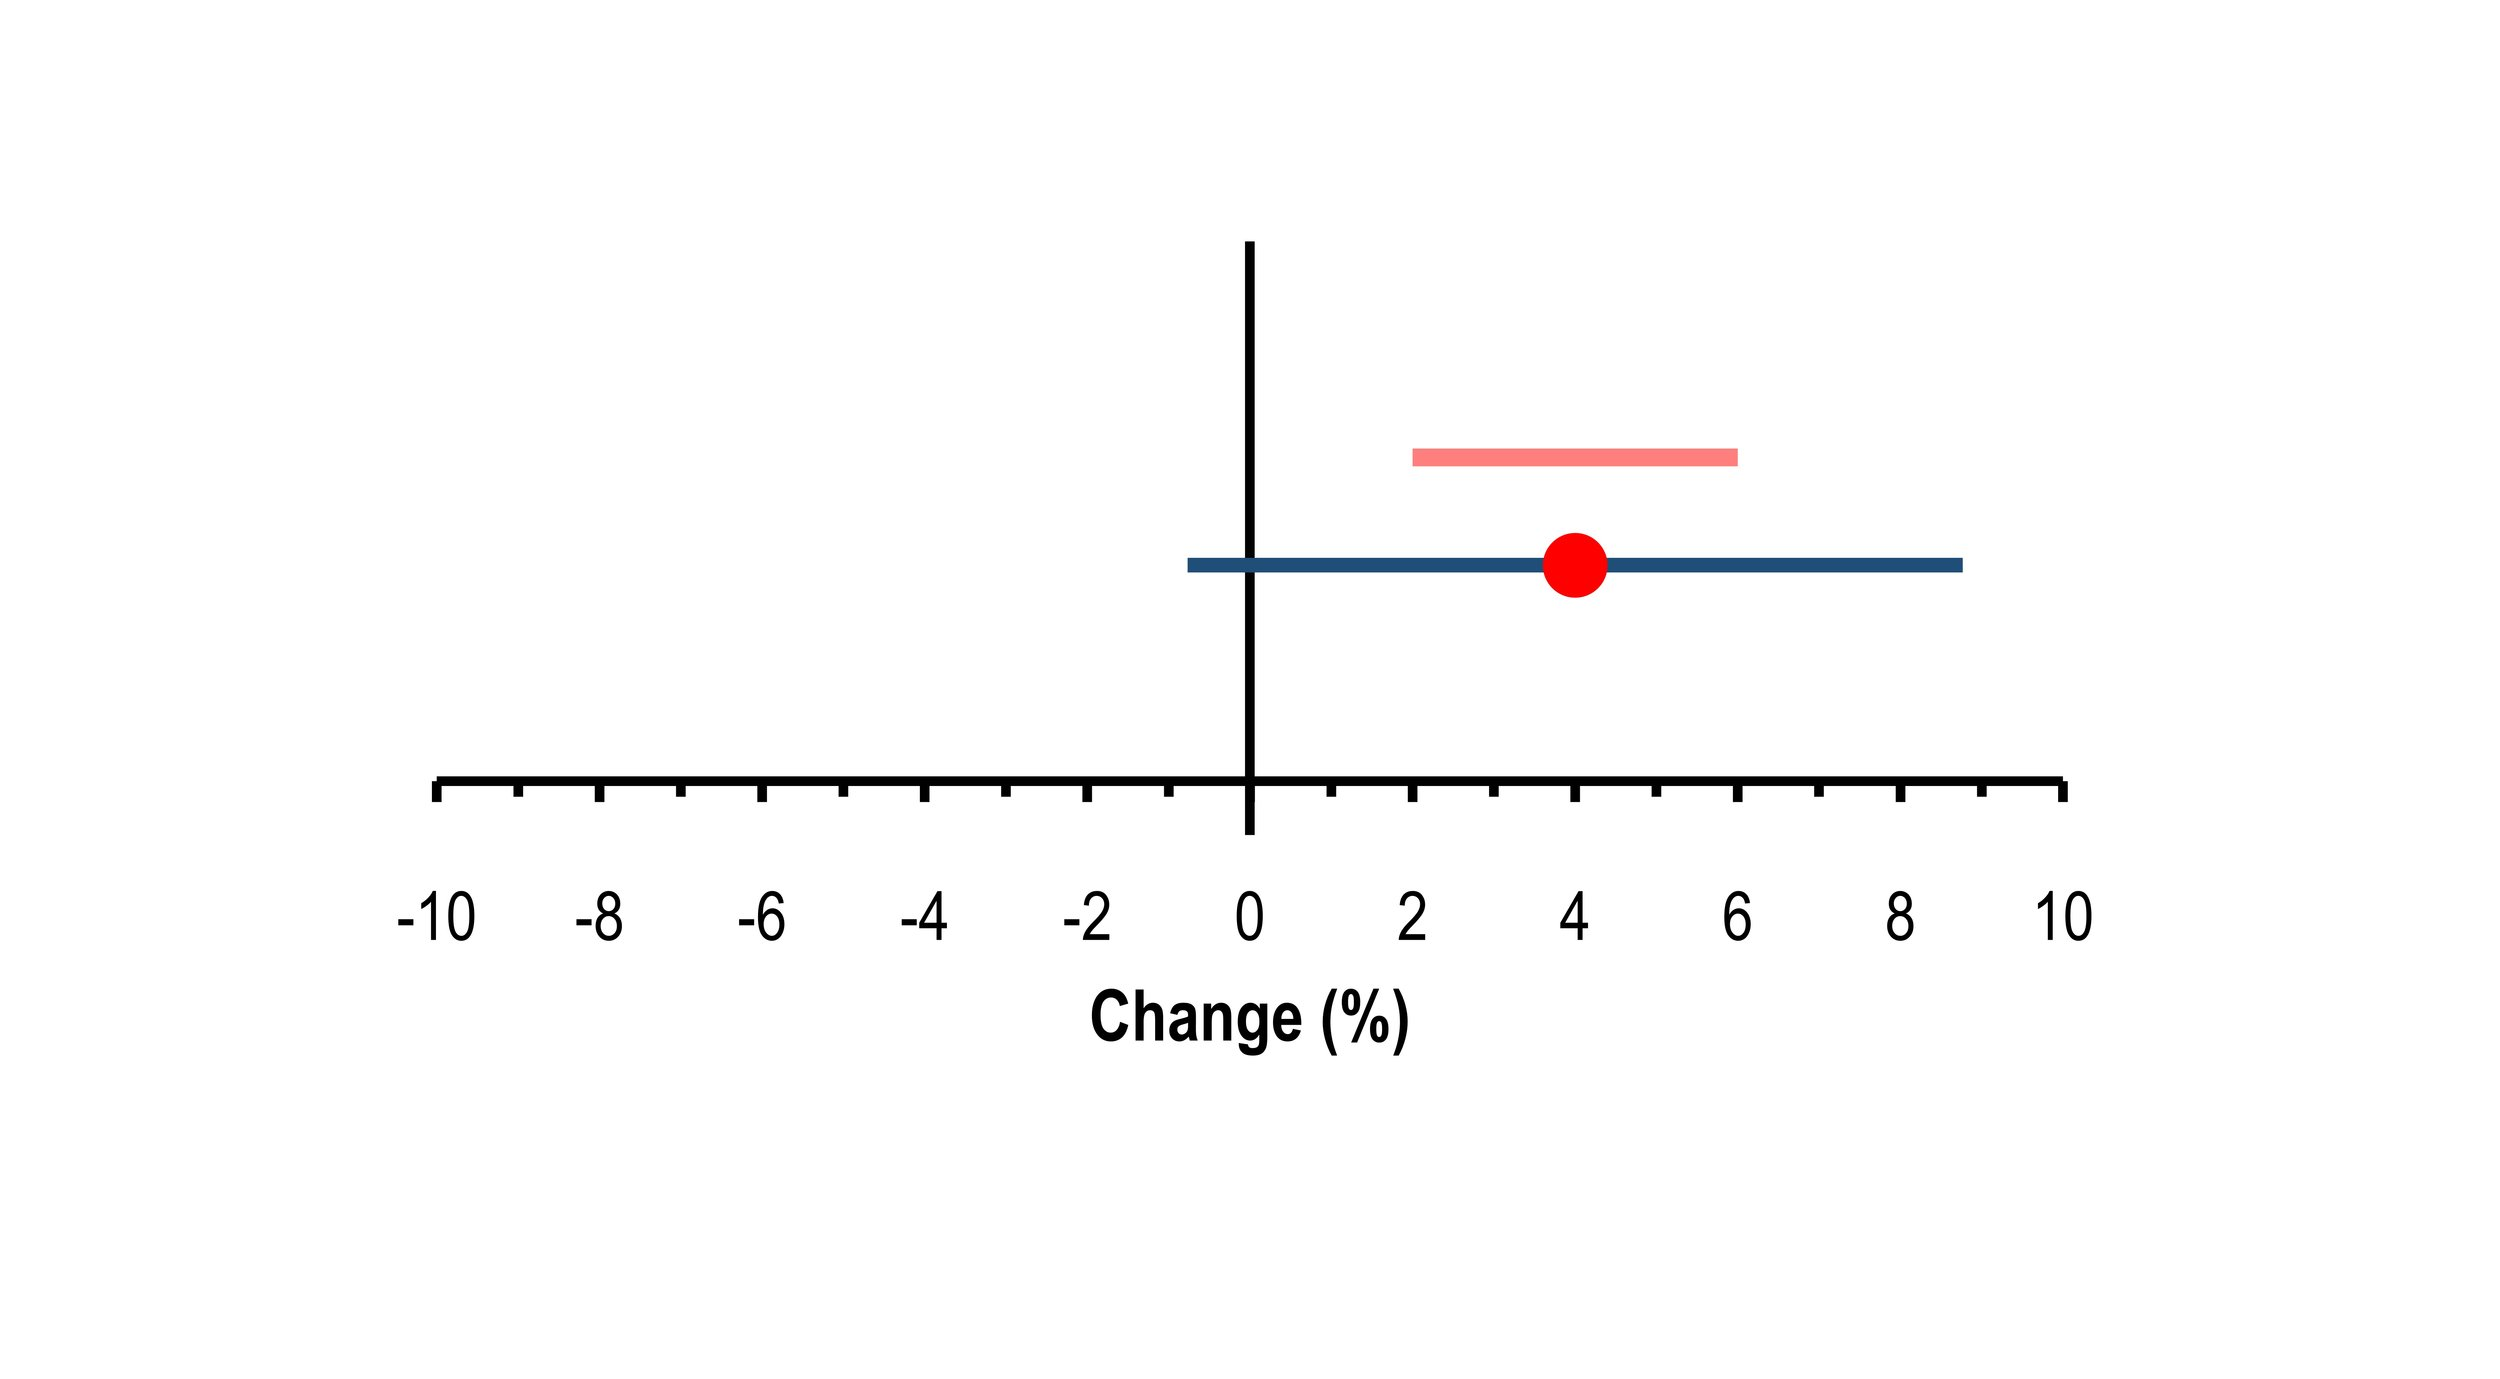 Figure 1: Observed change (red point) with typical error (red floating bar) and 90% confidence interval (navy adjoined bar)